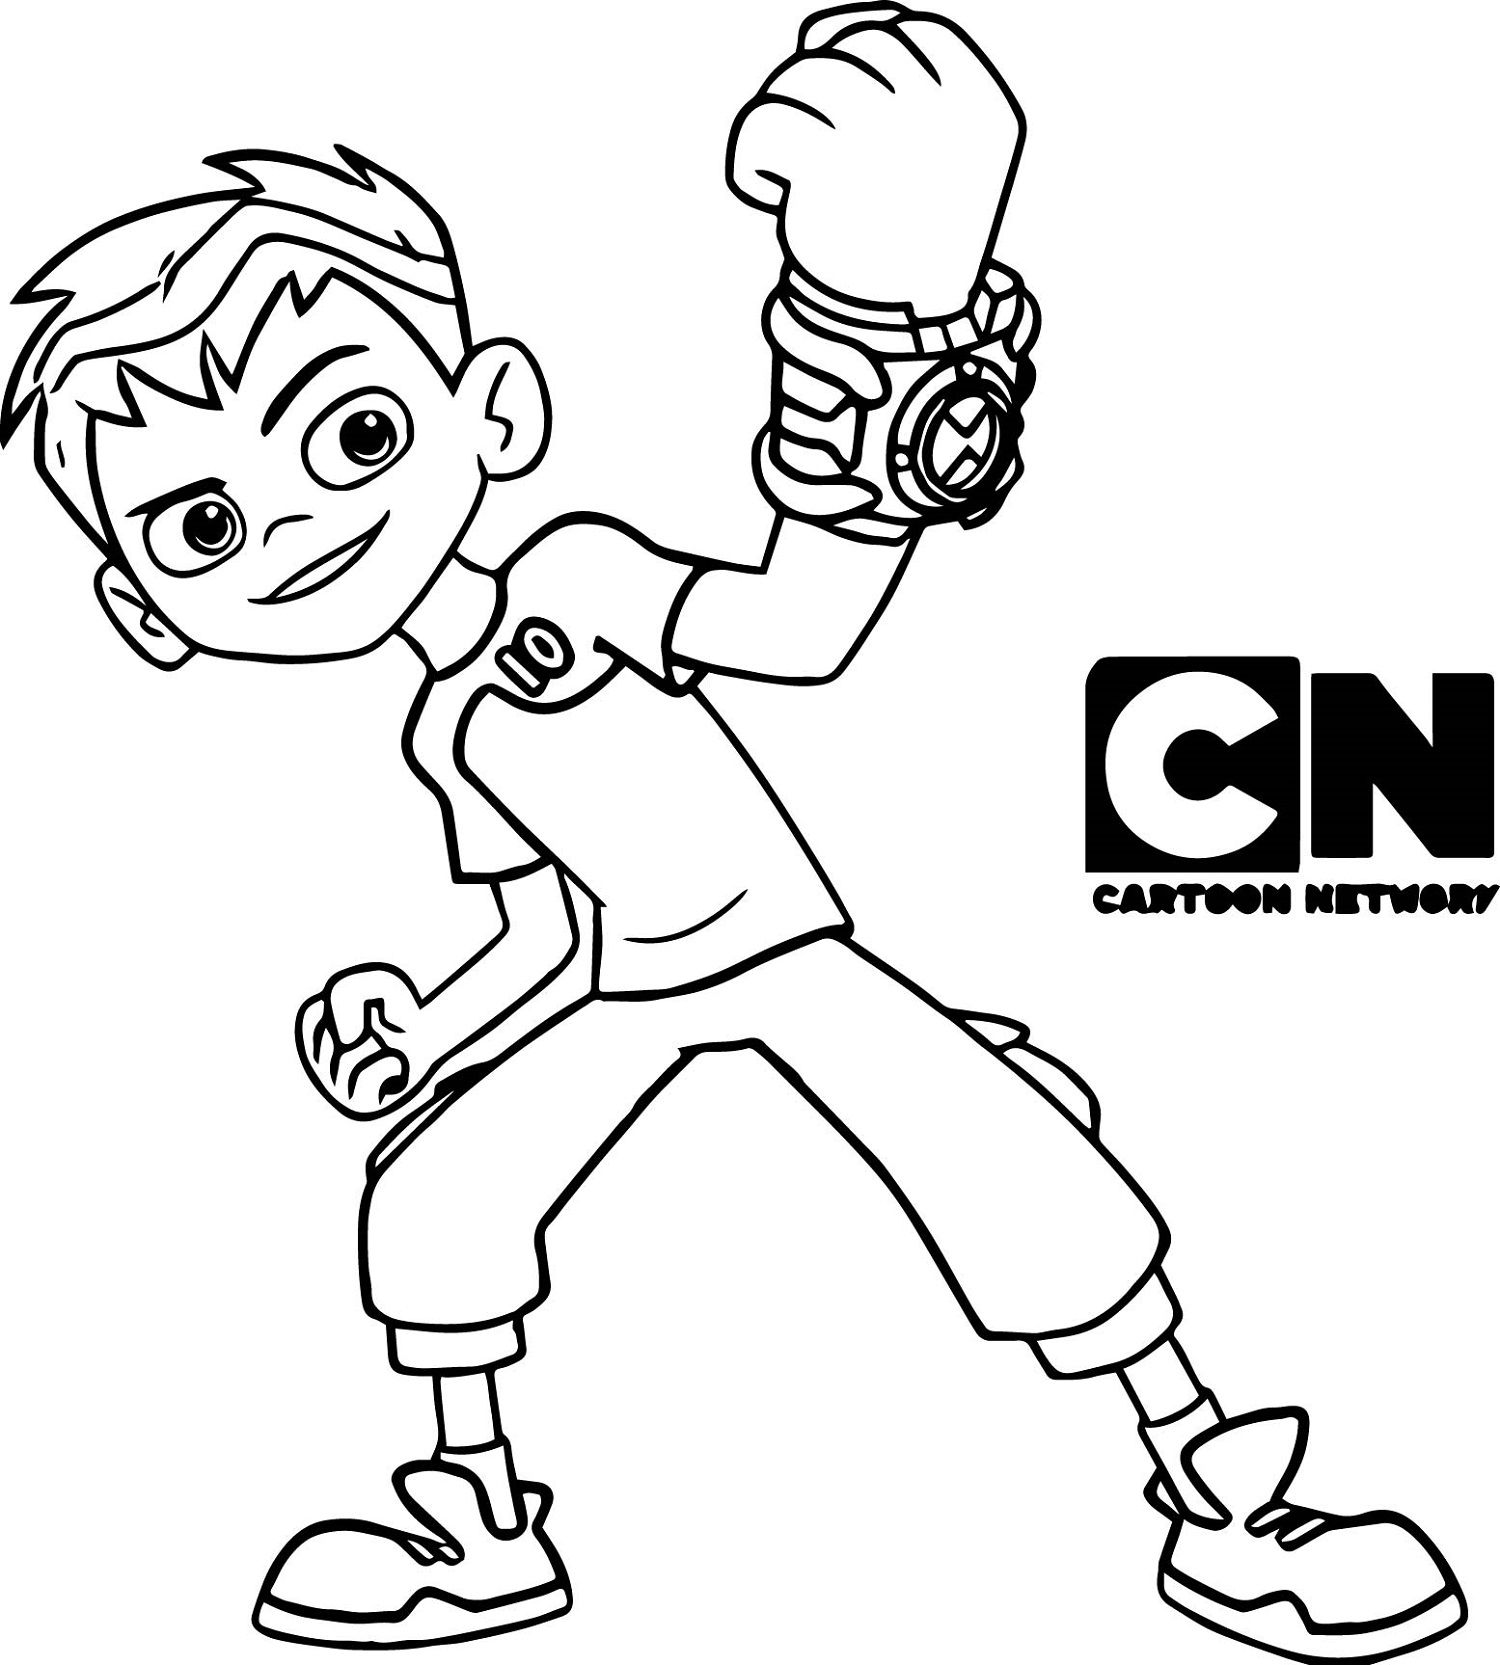 ben 10 coloring page ben 10 coloring pages download or print for free 130 images ben page coloring 10